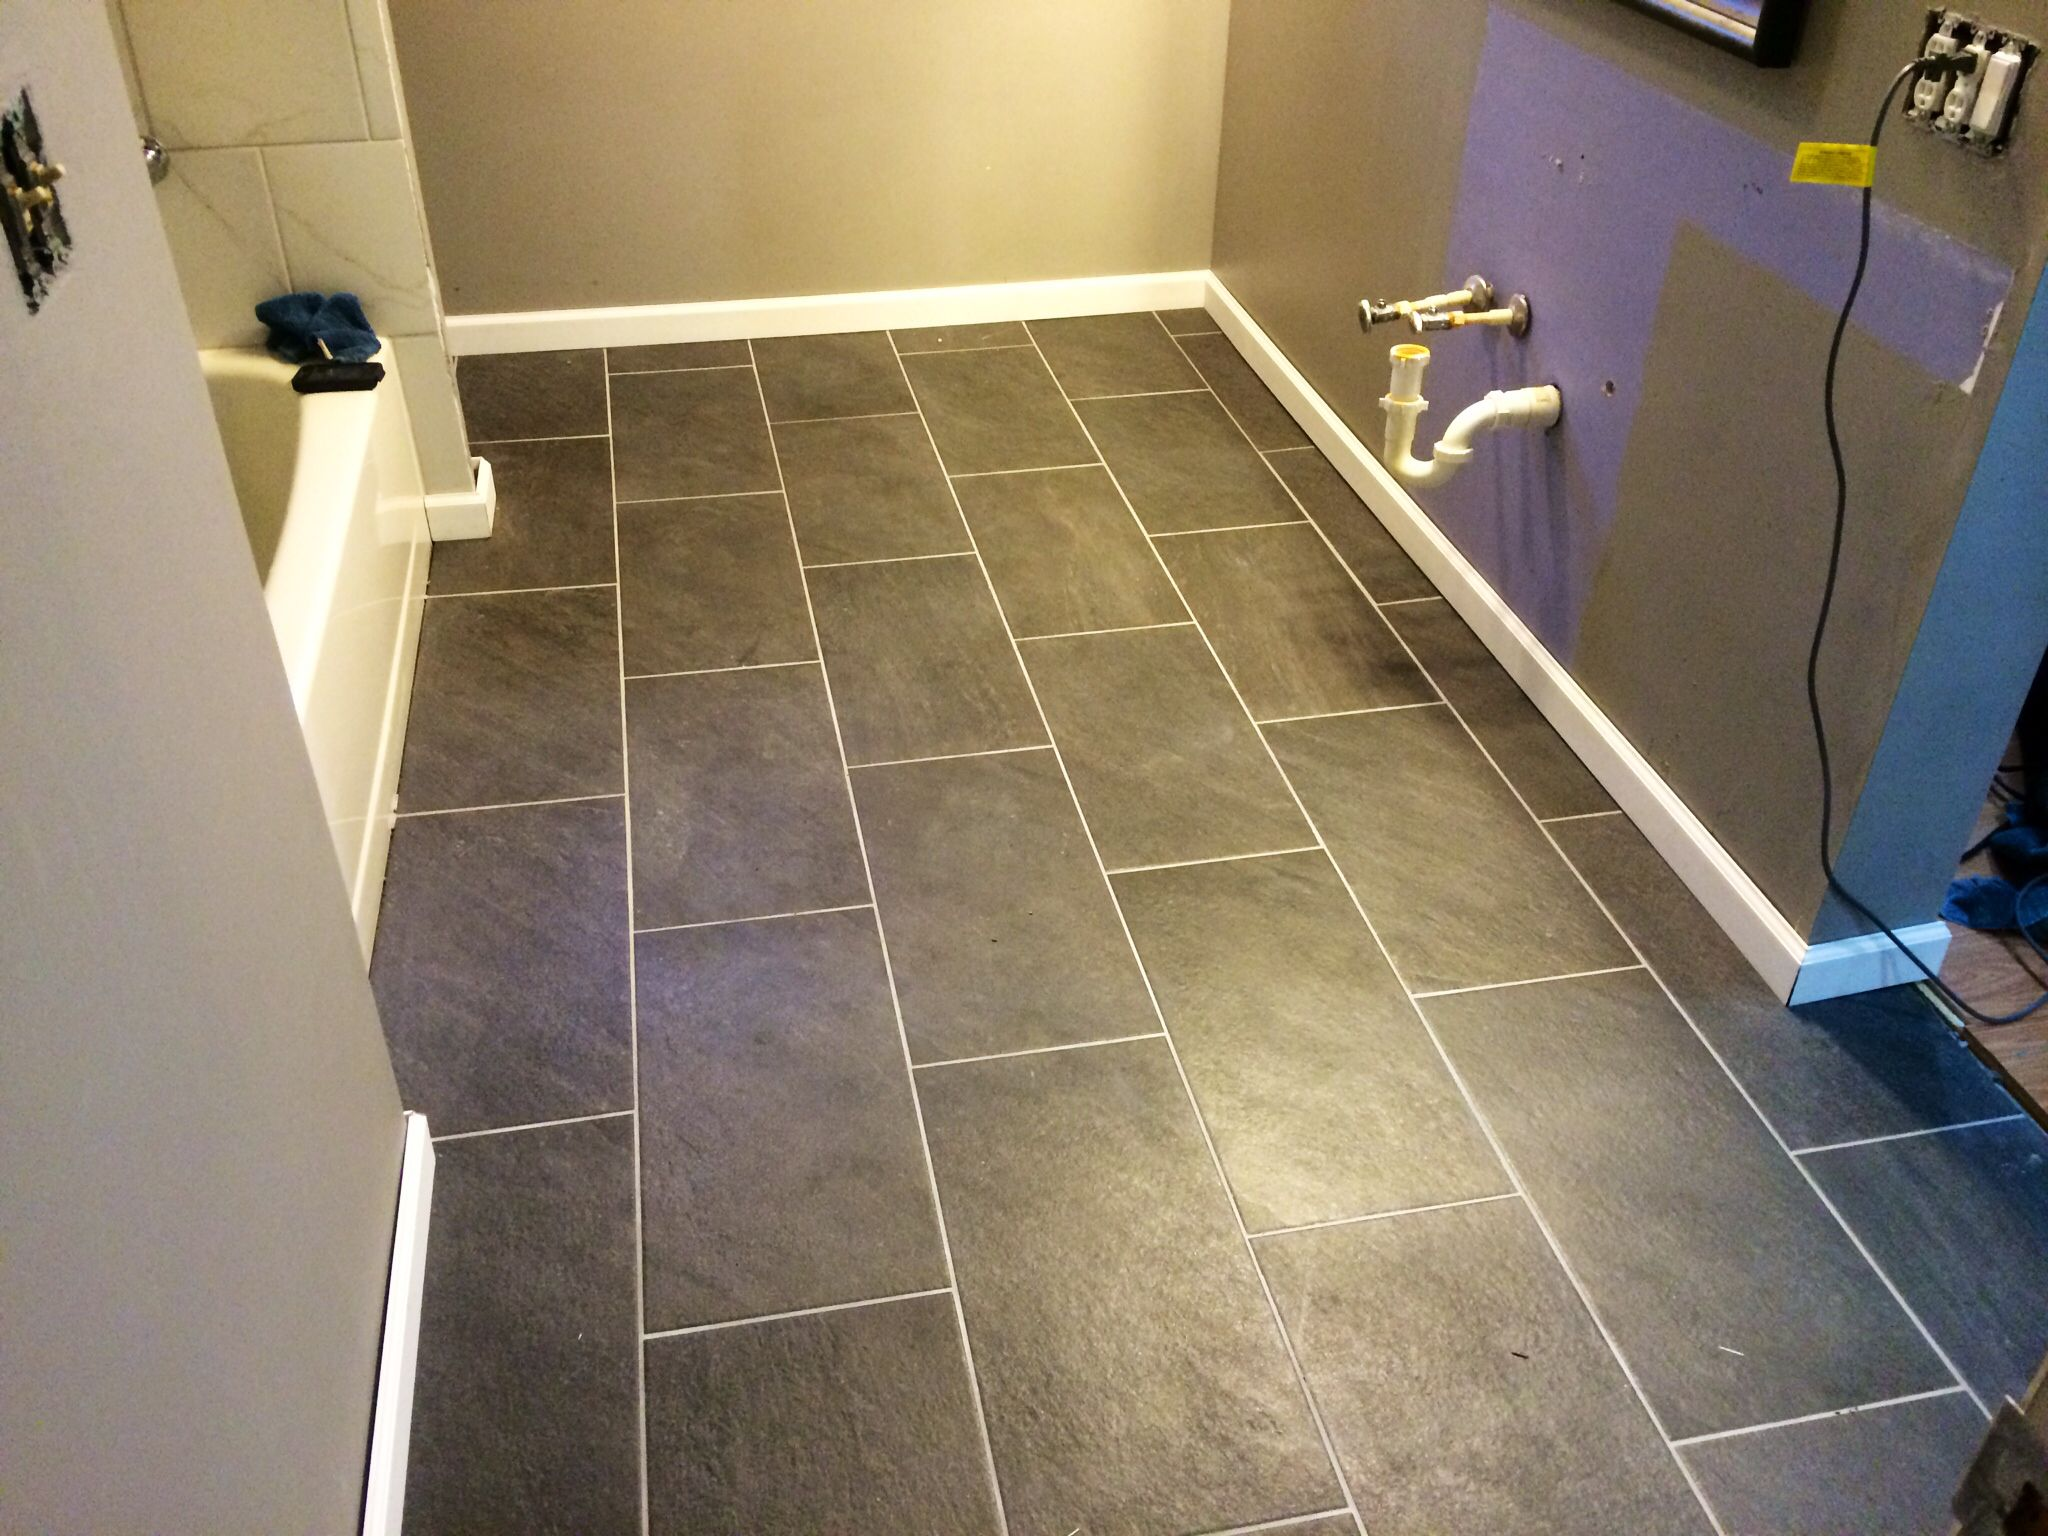 Our New Charcoal Gray 12x24 Bathroom Tile Floors L O V E Grey Floor Tiles Grey Flooring Tile Floor